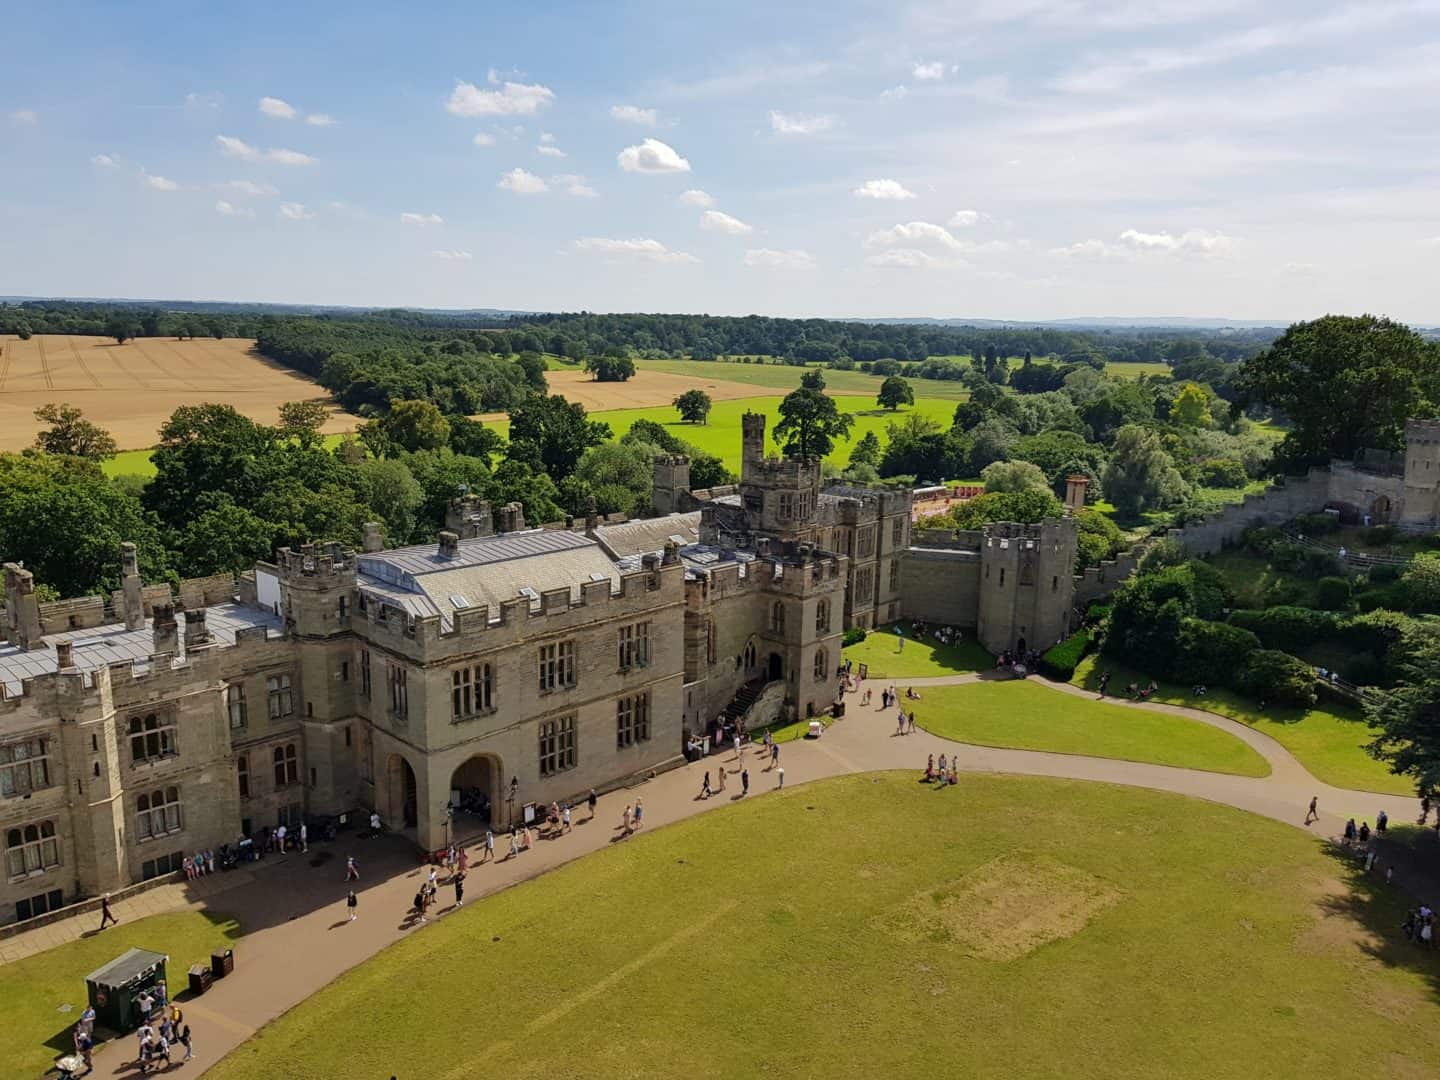 aerial view of Warwick Castle and surrounding countryside